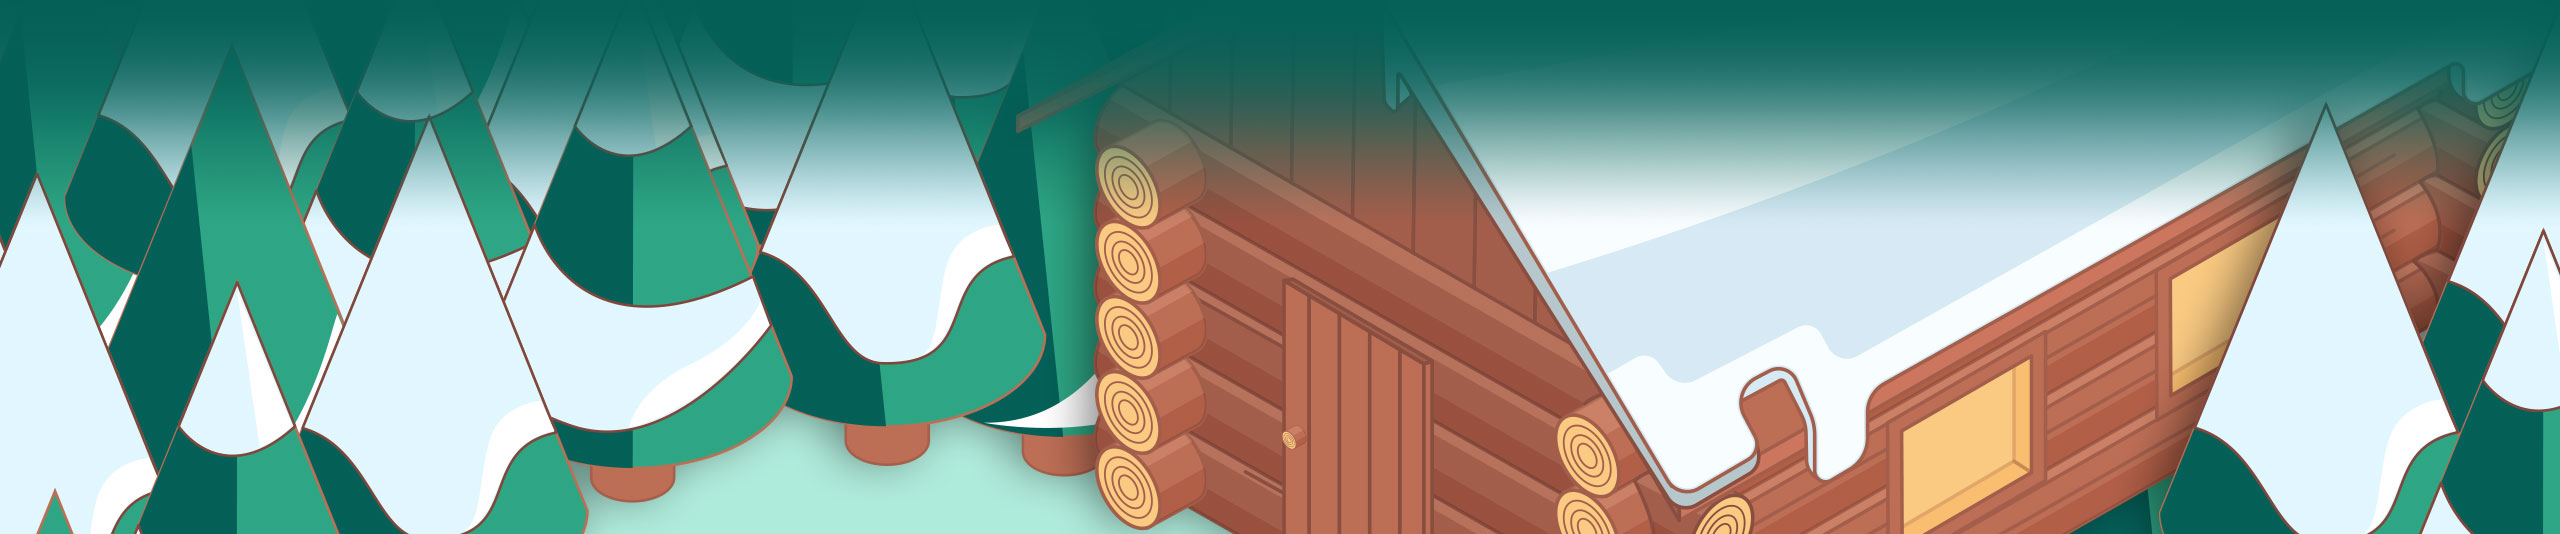 Isometric Illustrator Speed Art – Log Cabin